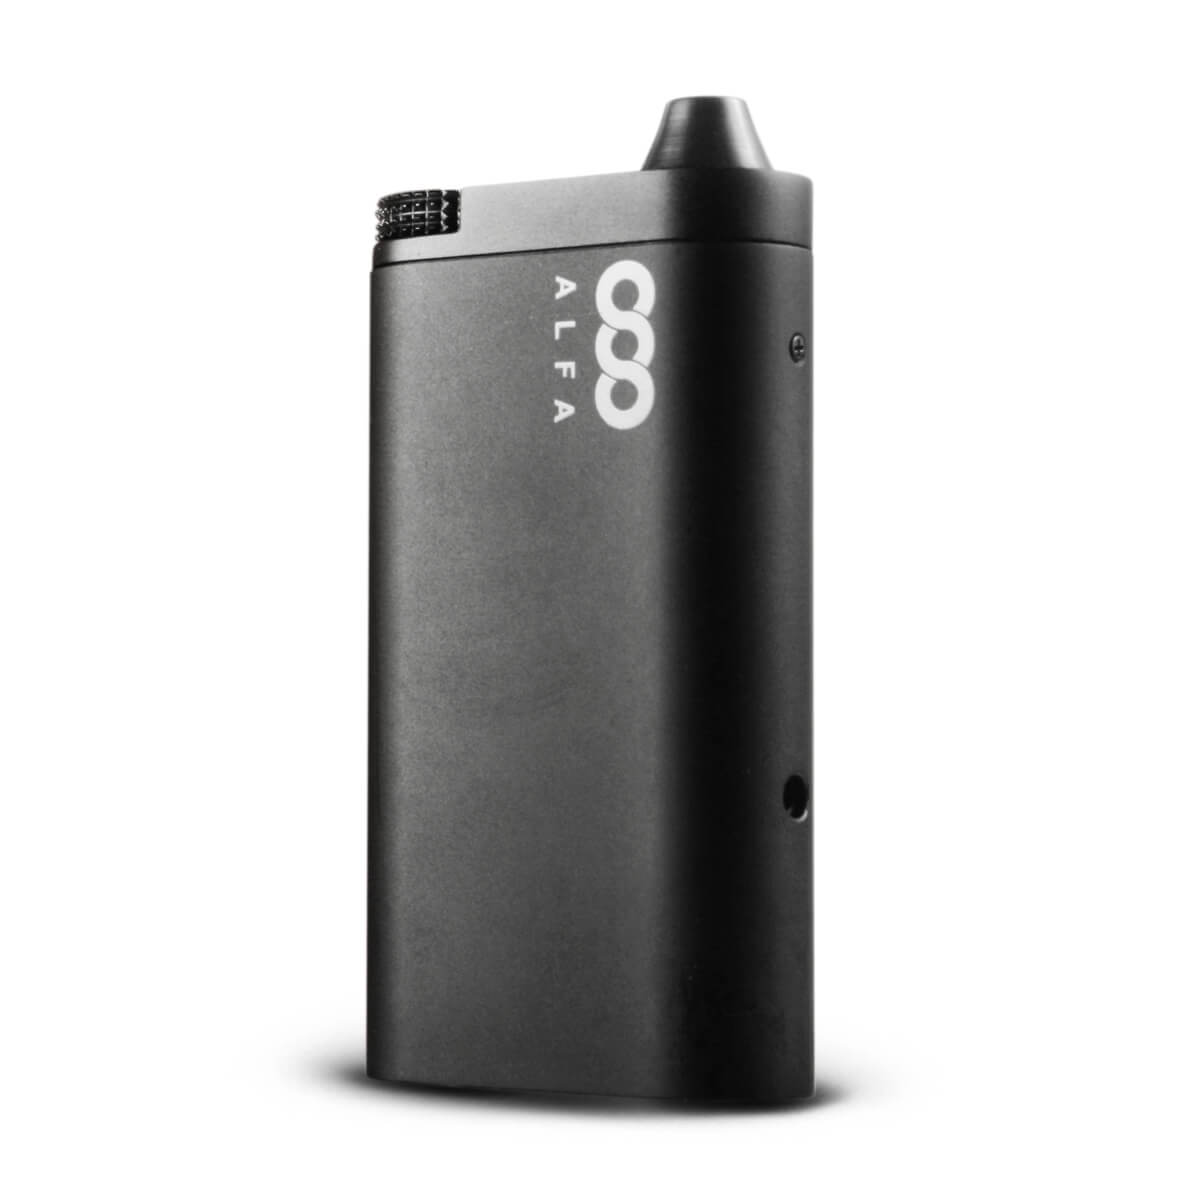 Alfa Portable Vaporizer by GoBoof